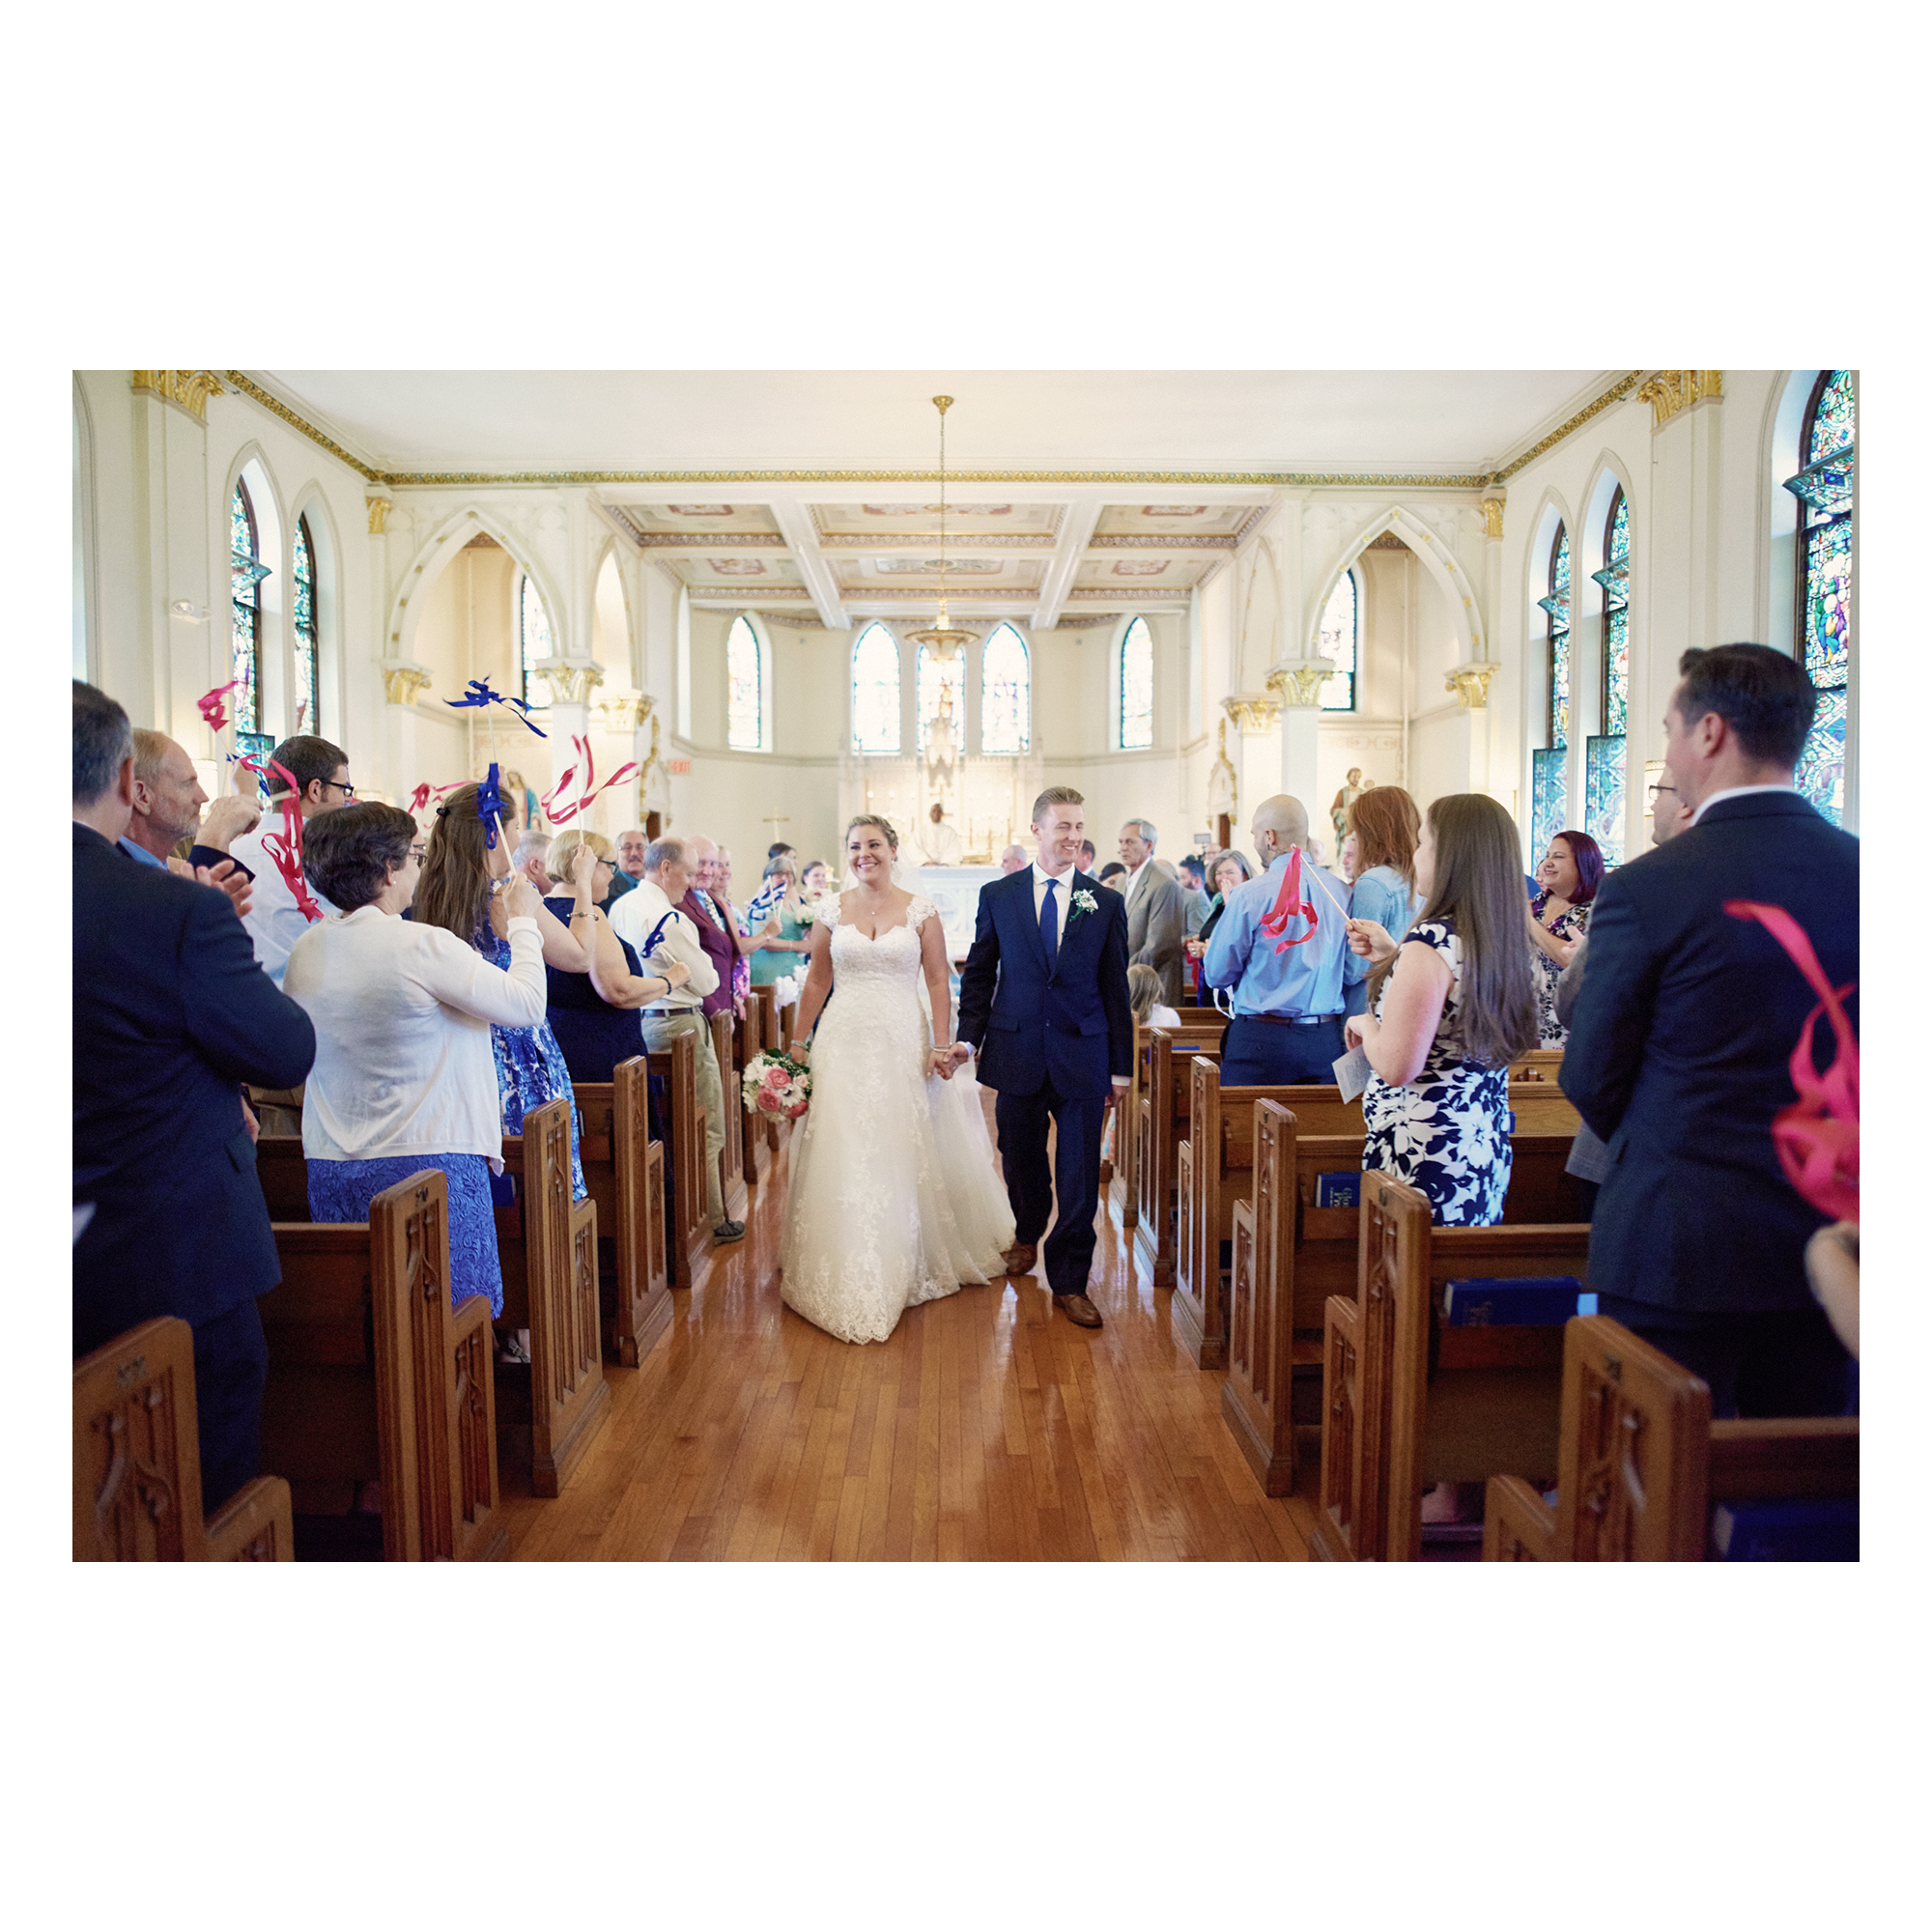 Spring Wedding at a Private School in Connecticut